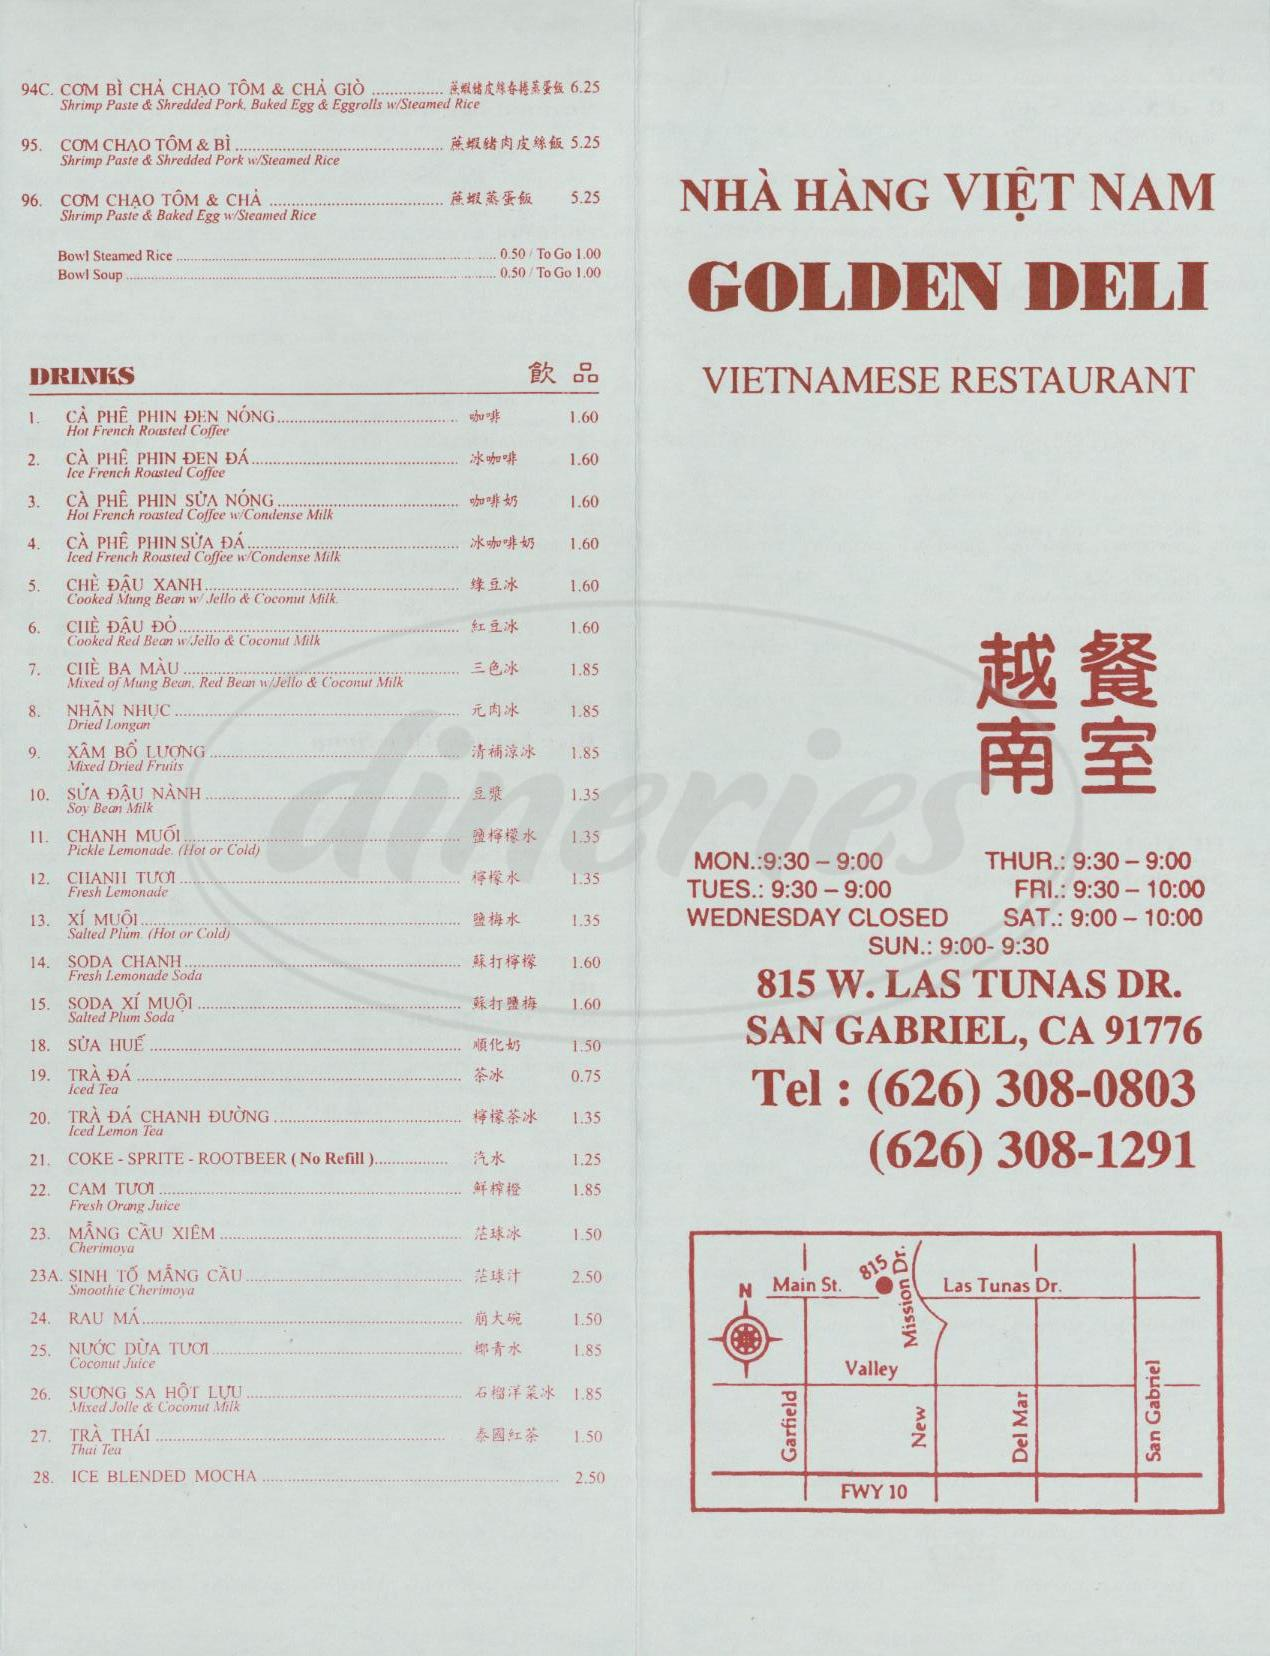 menu for Golden Deli Vietnamese Restaurant